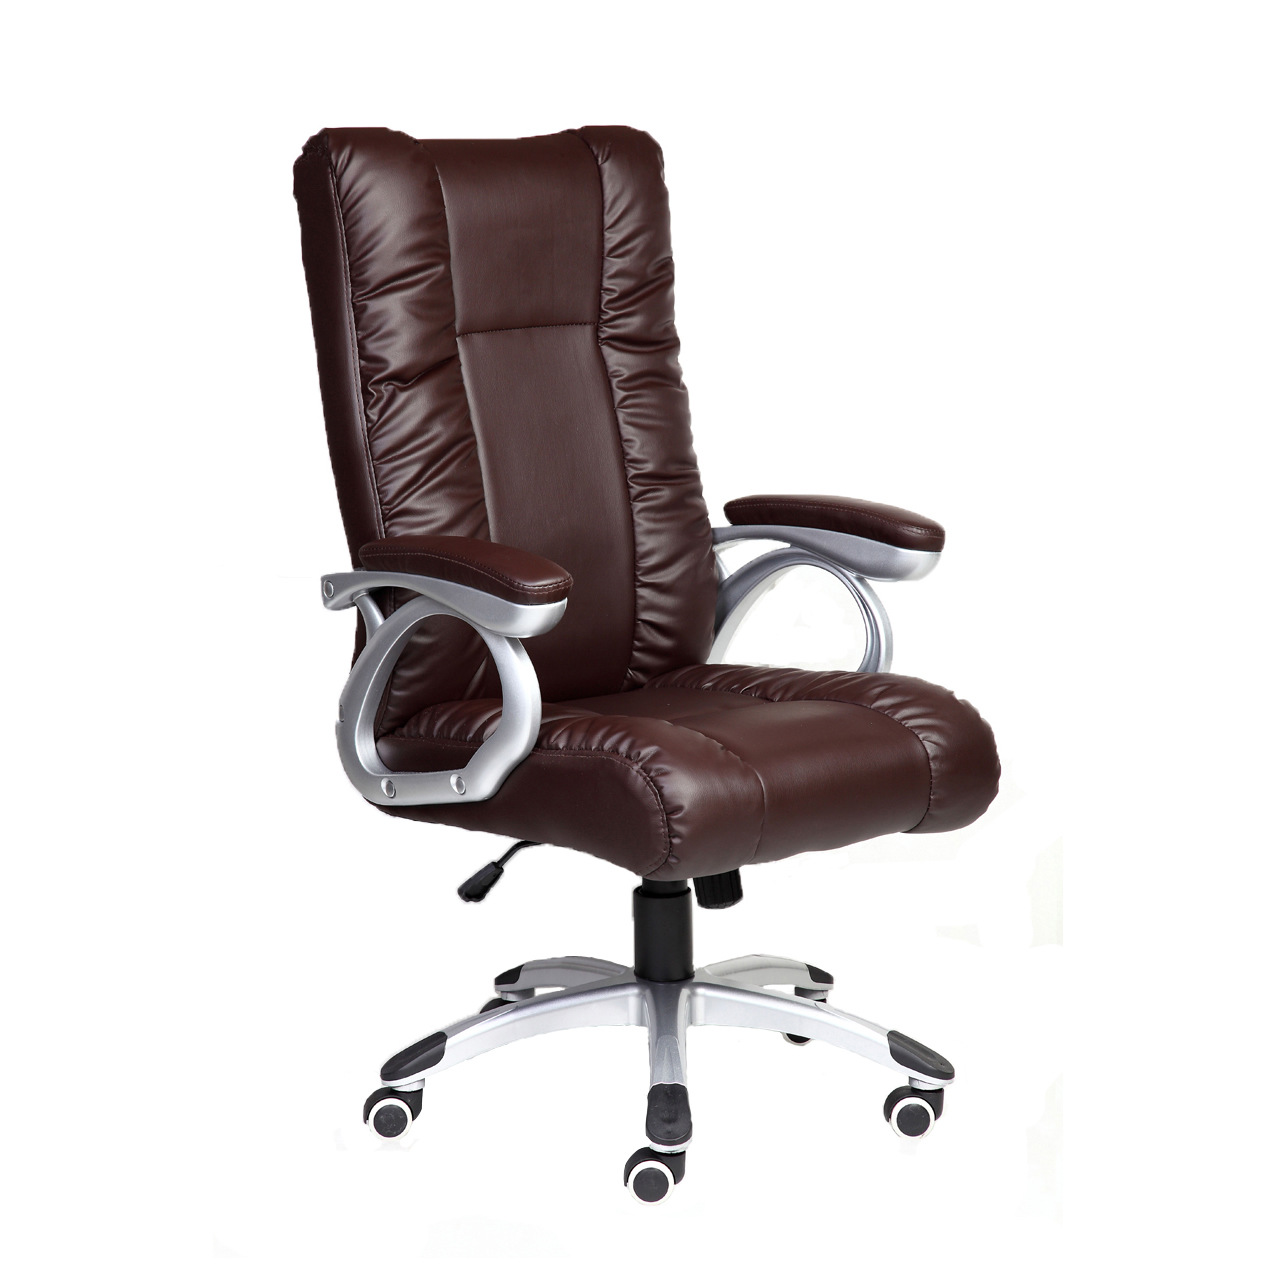 Ergonomic office chair recliner - High Quality Computer Office Chair Can Lift Swivel Recliner Furniture China Mainland